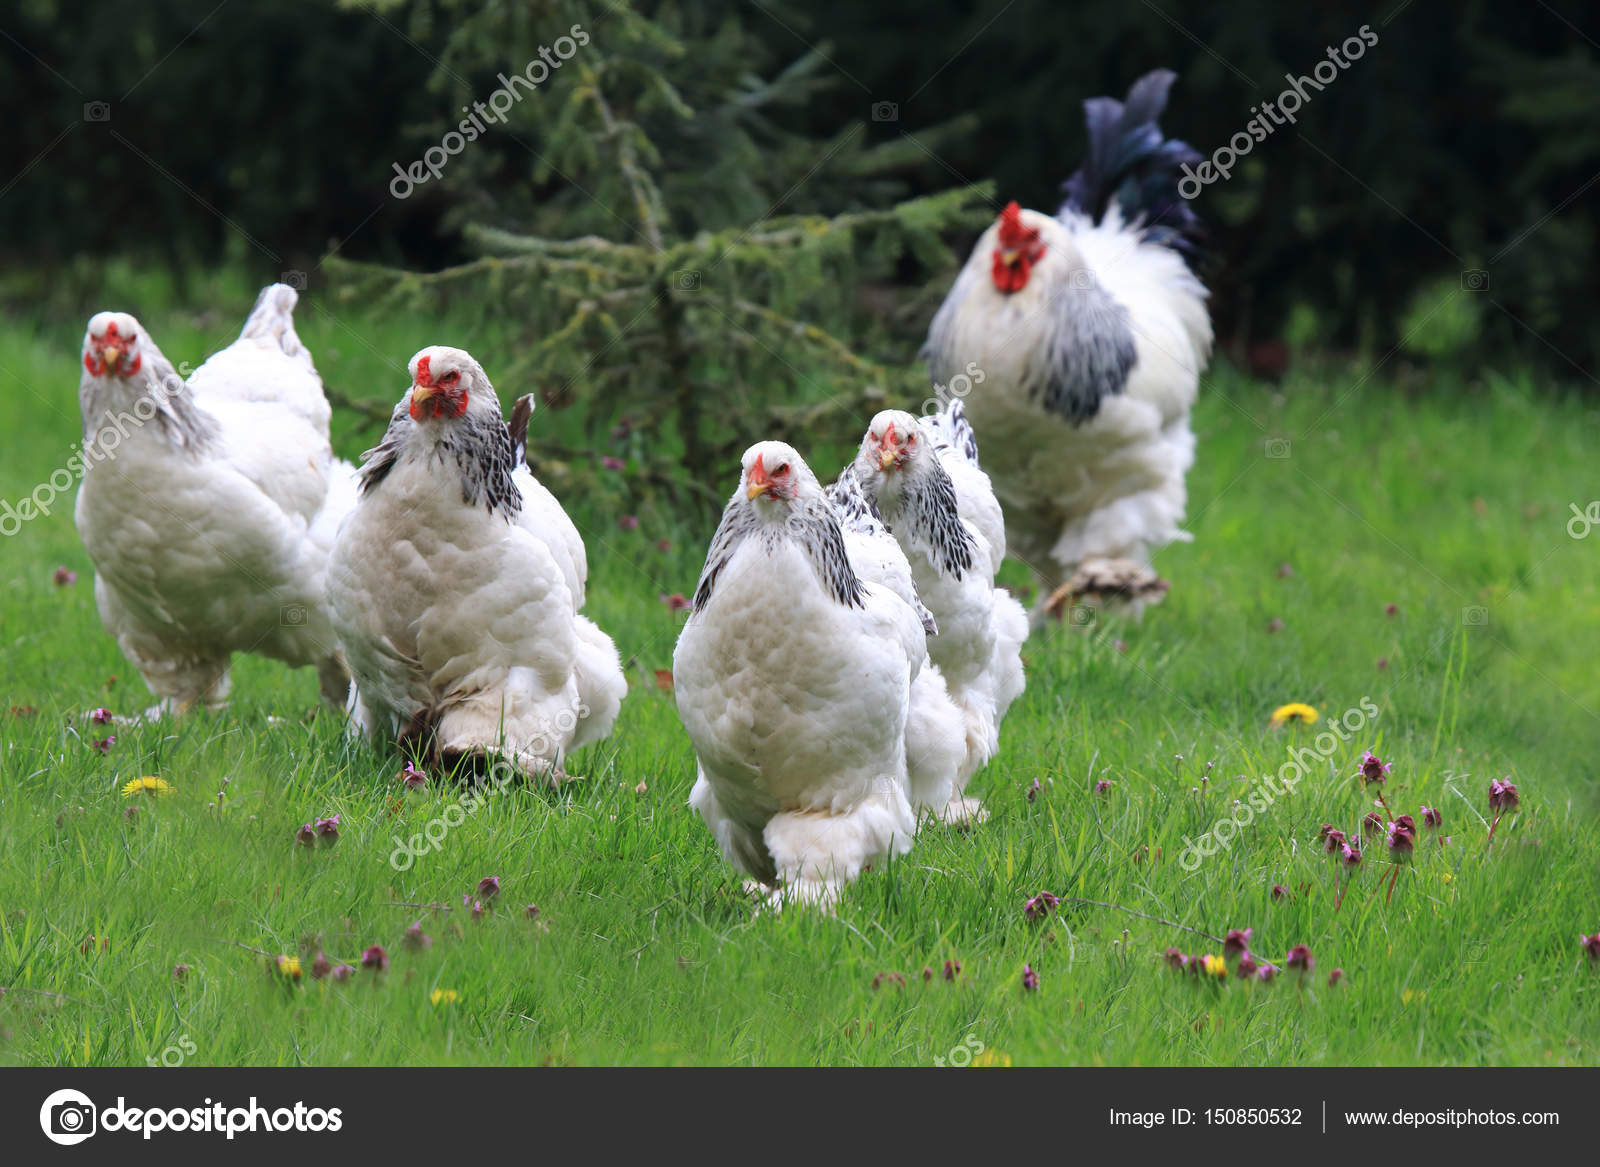 chickens with rooster running stock photo mayerberg 150850532